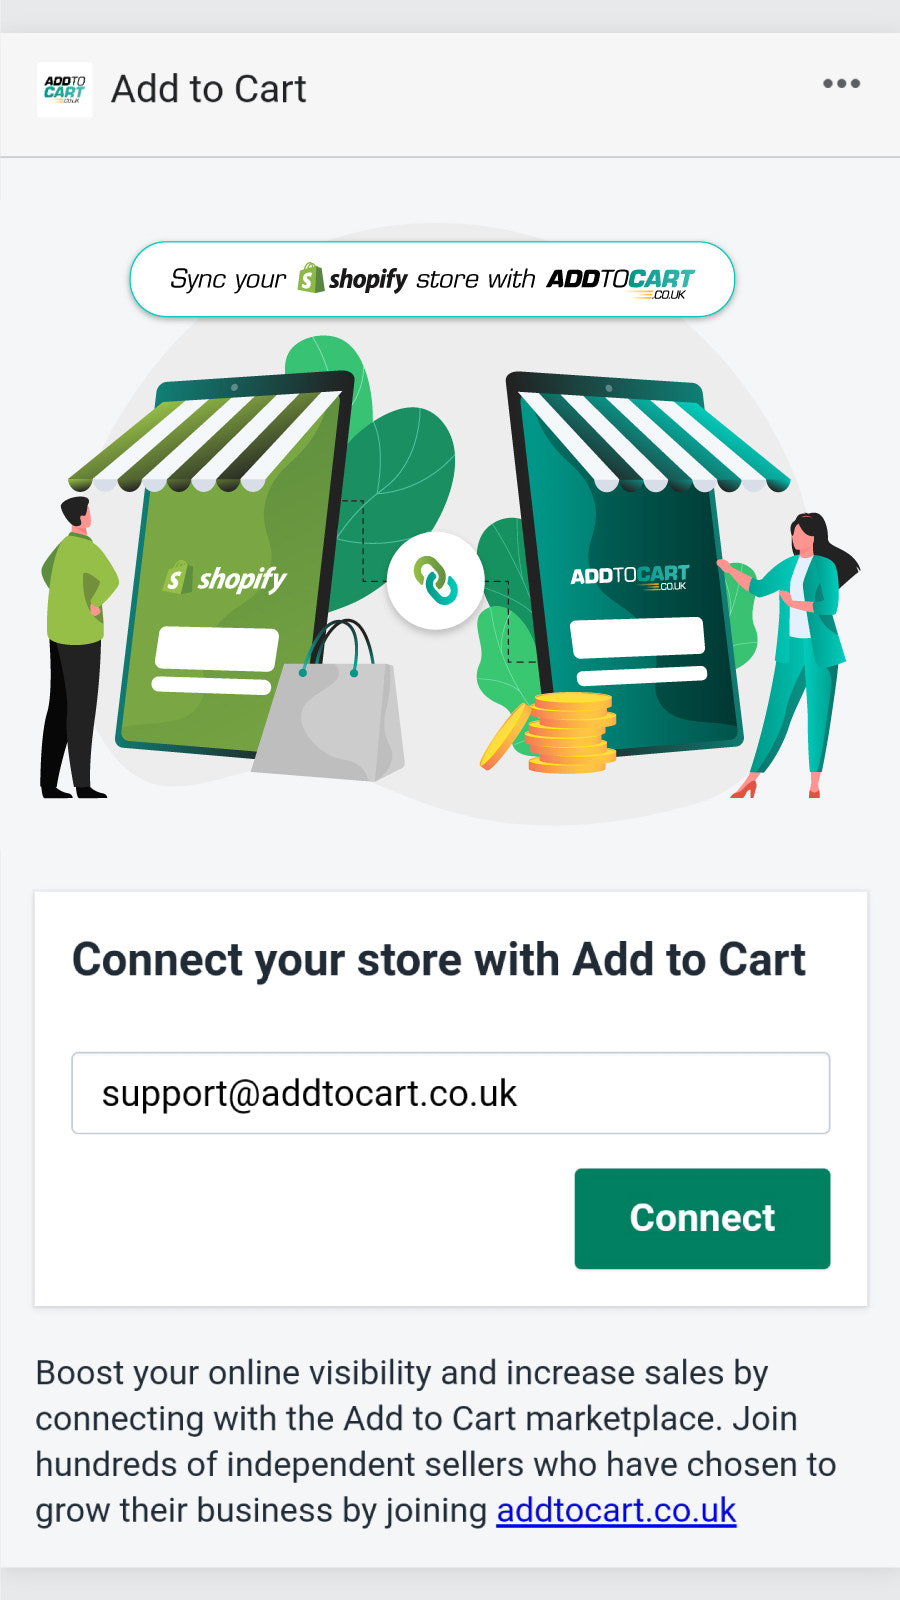 Connect with Add to Cart